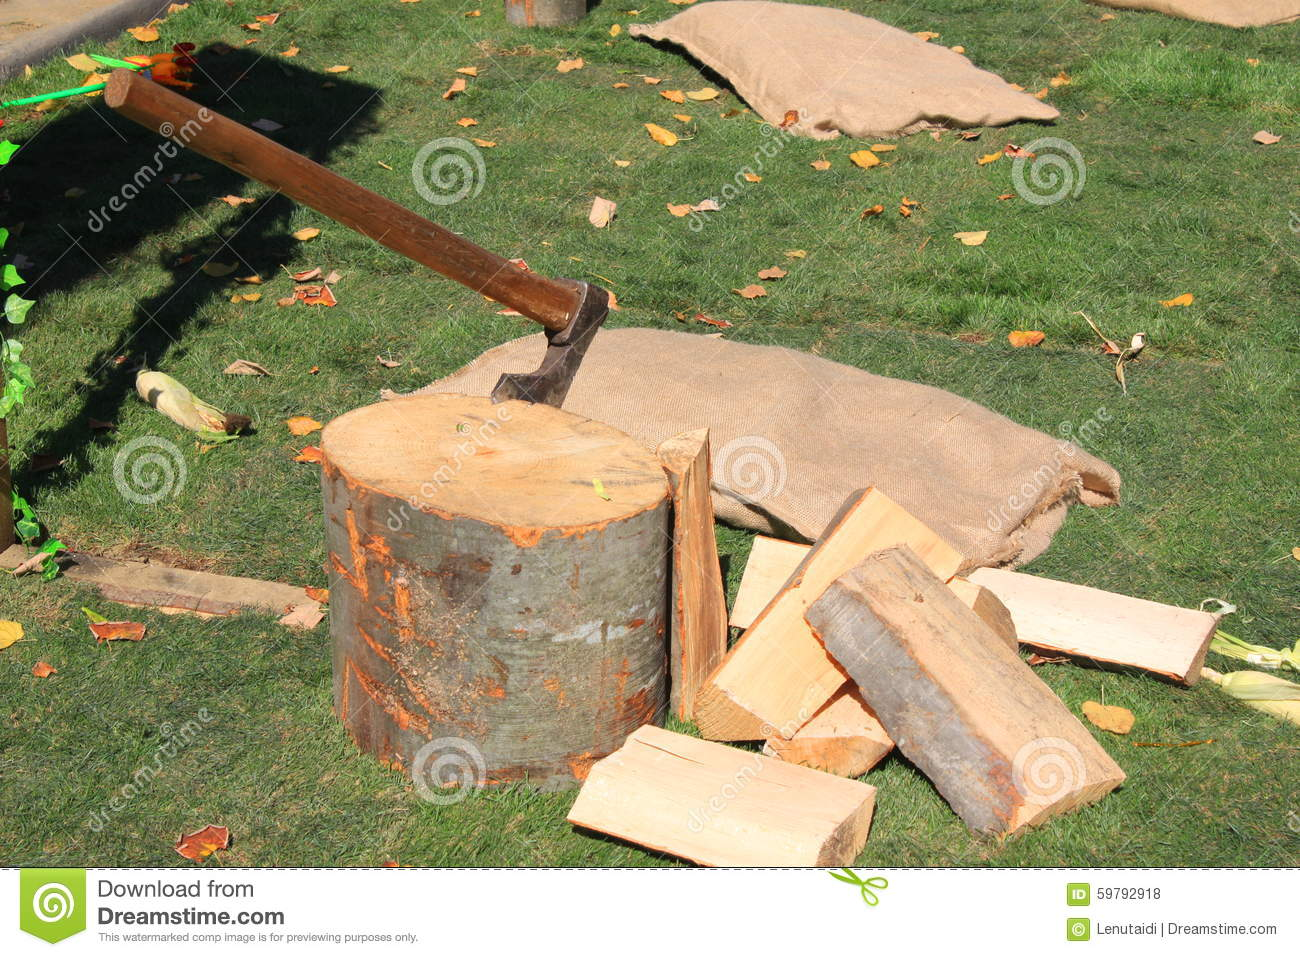 how to make a chopping block for splitting wood